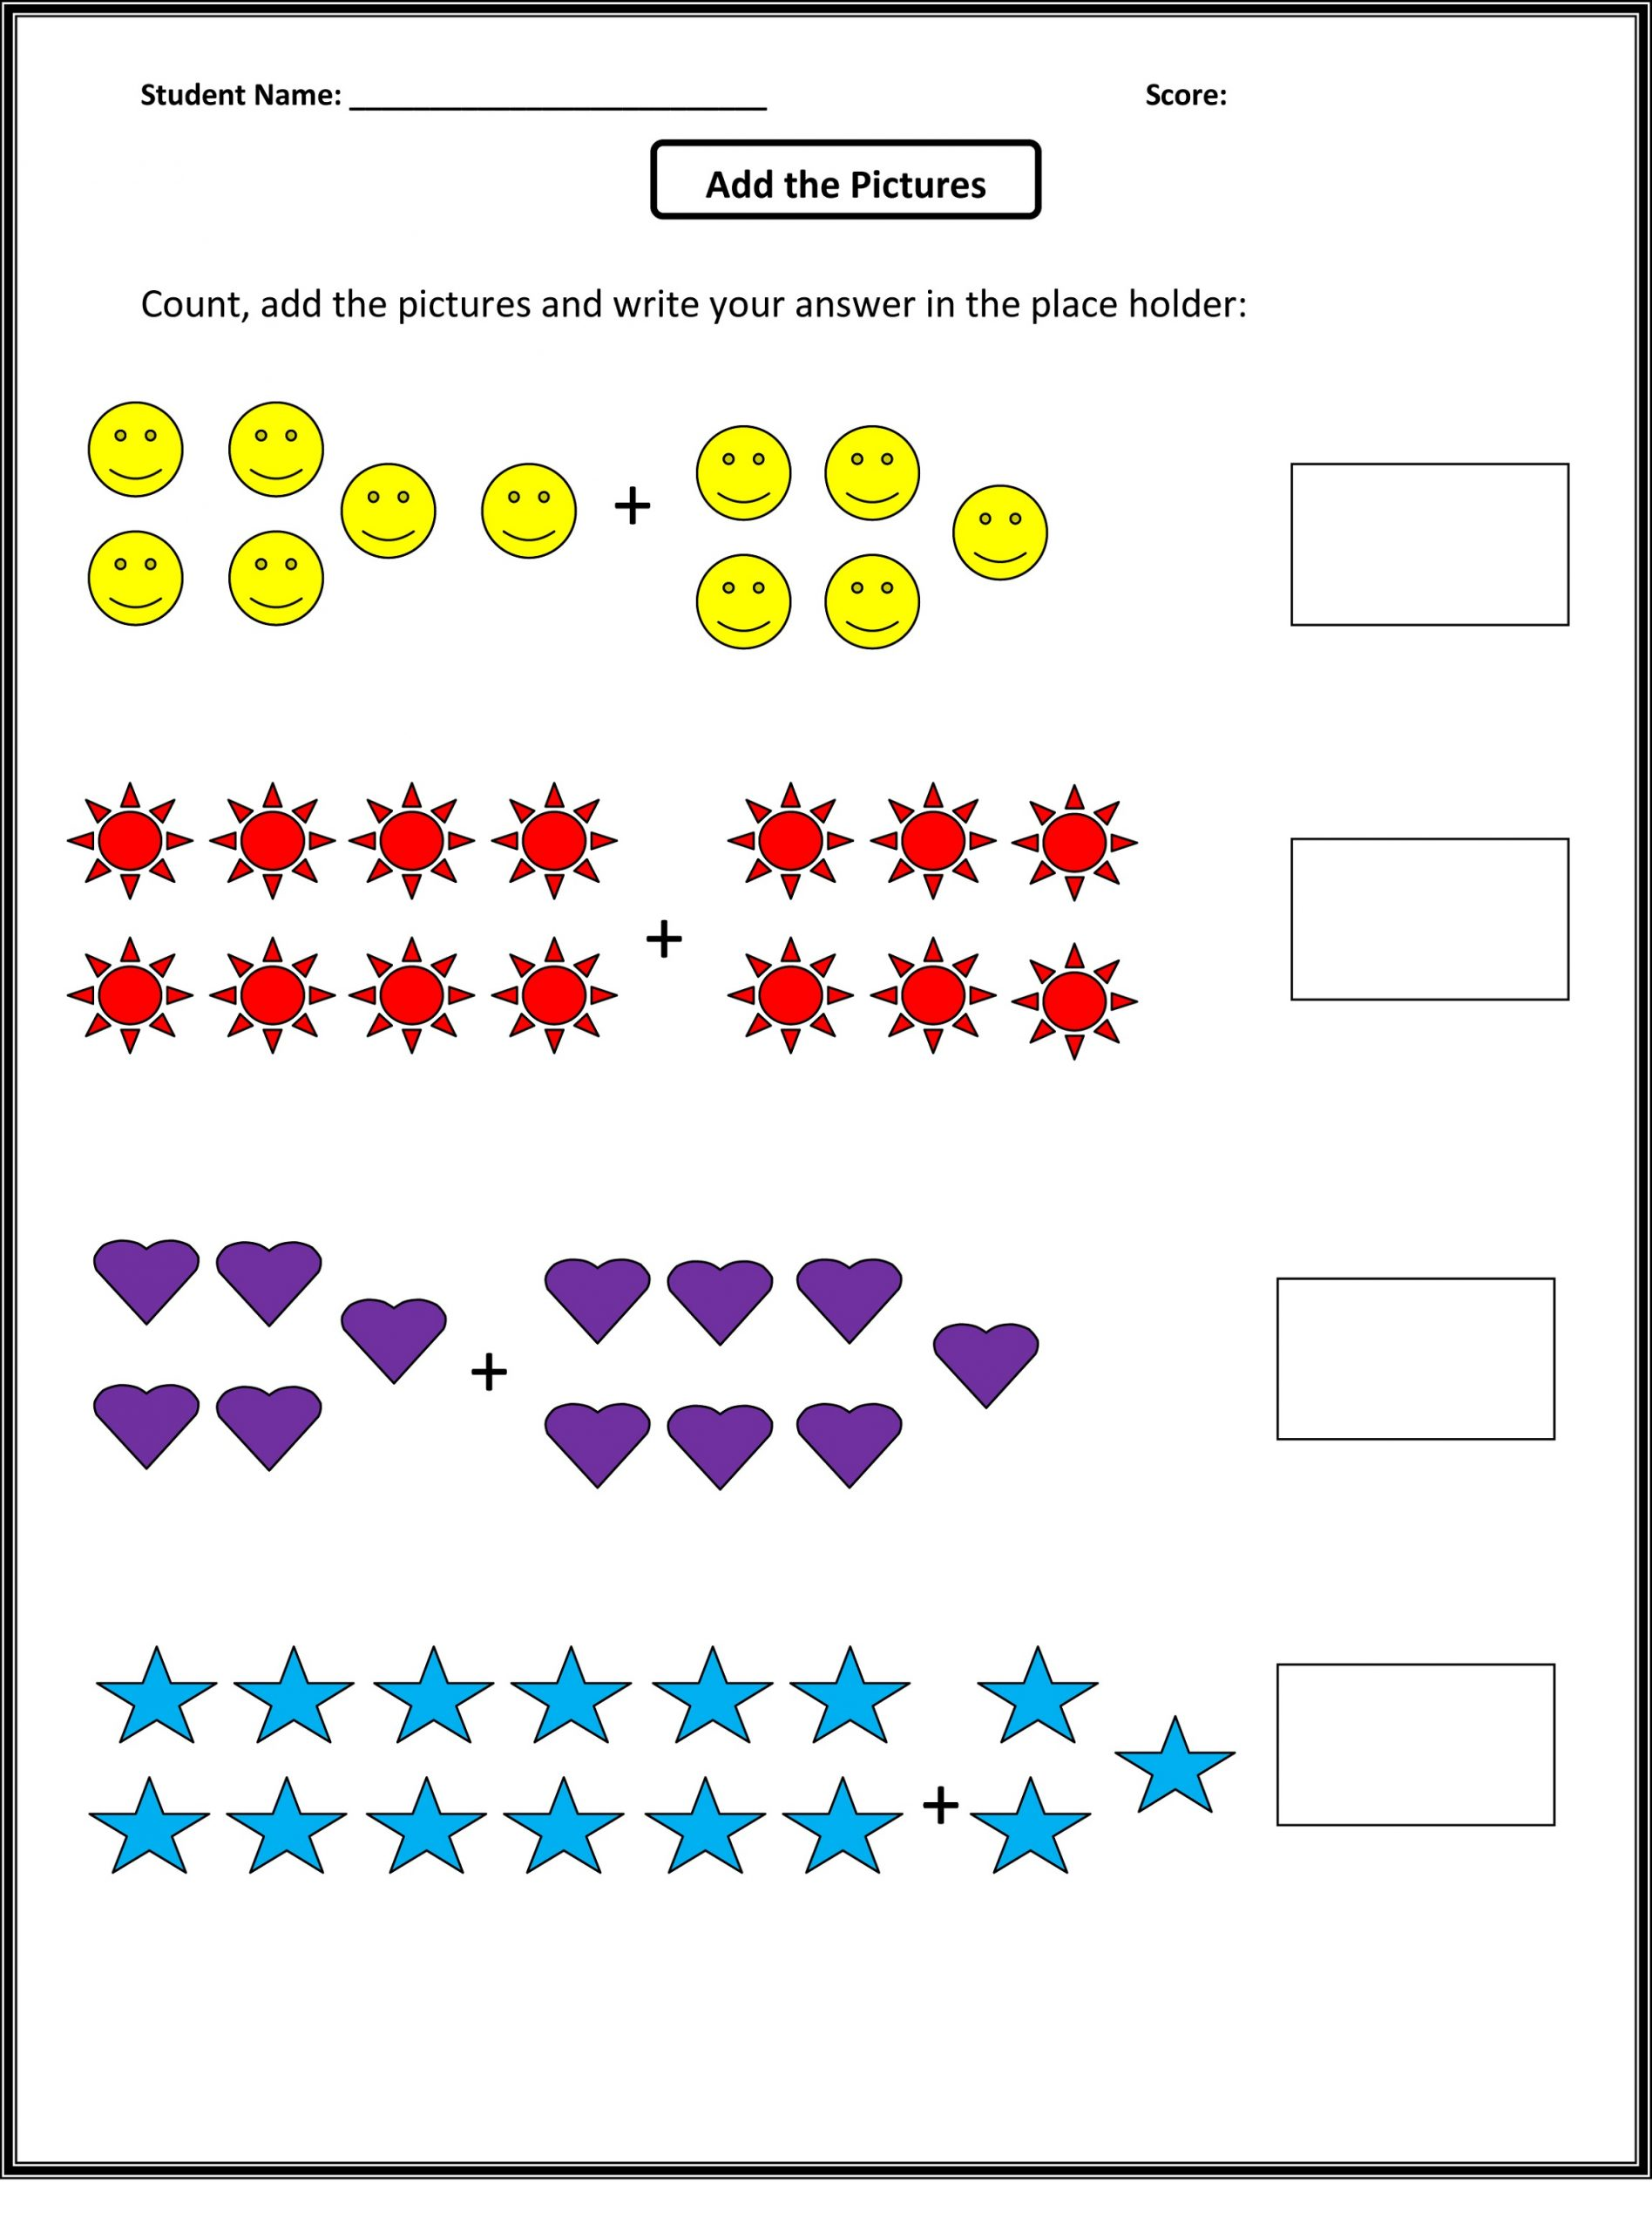 Free Math Worksheets for Grade 1 Counting